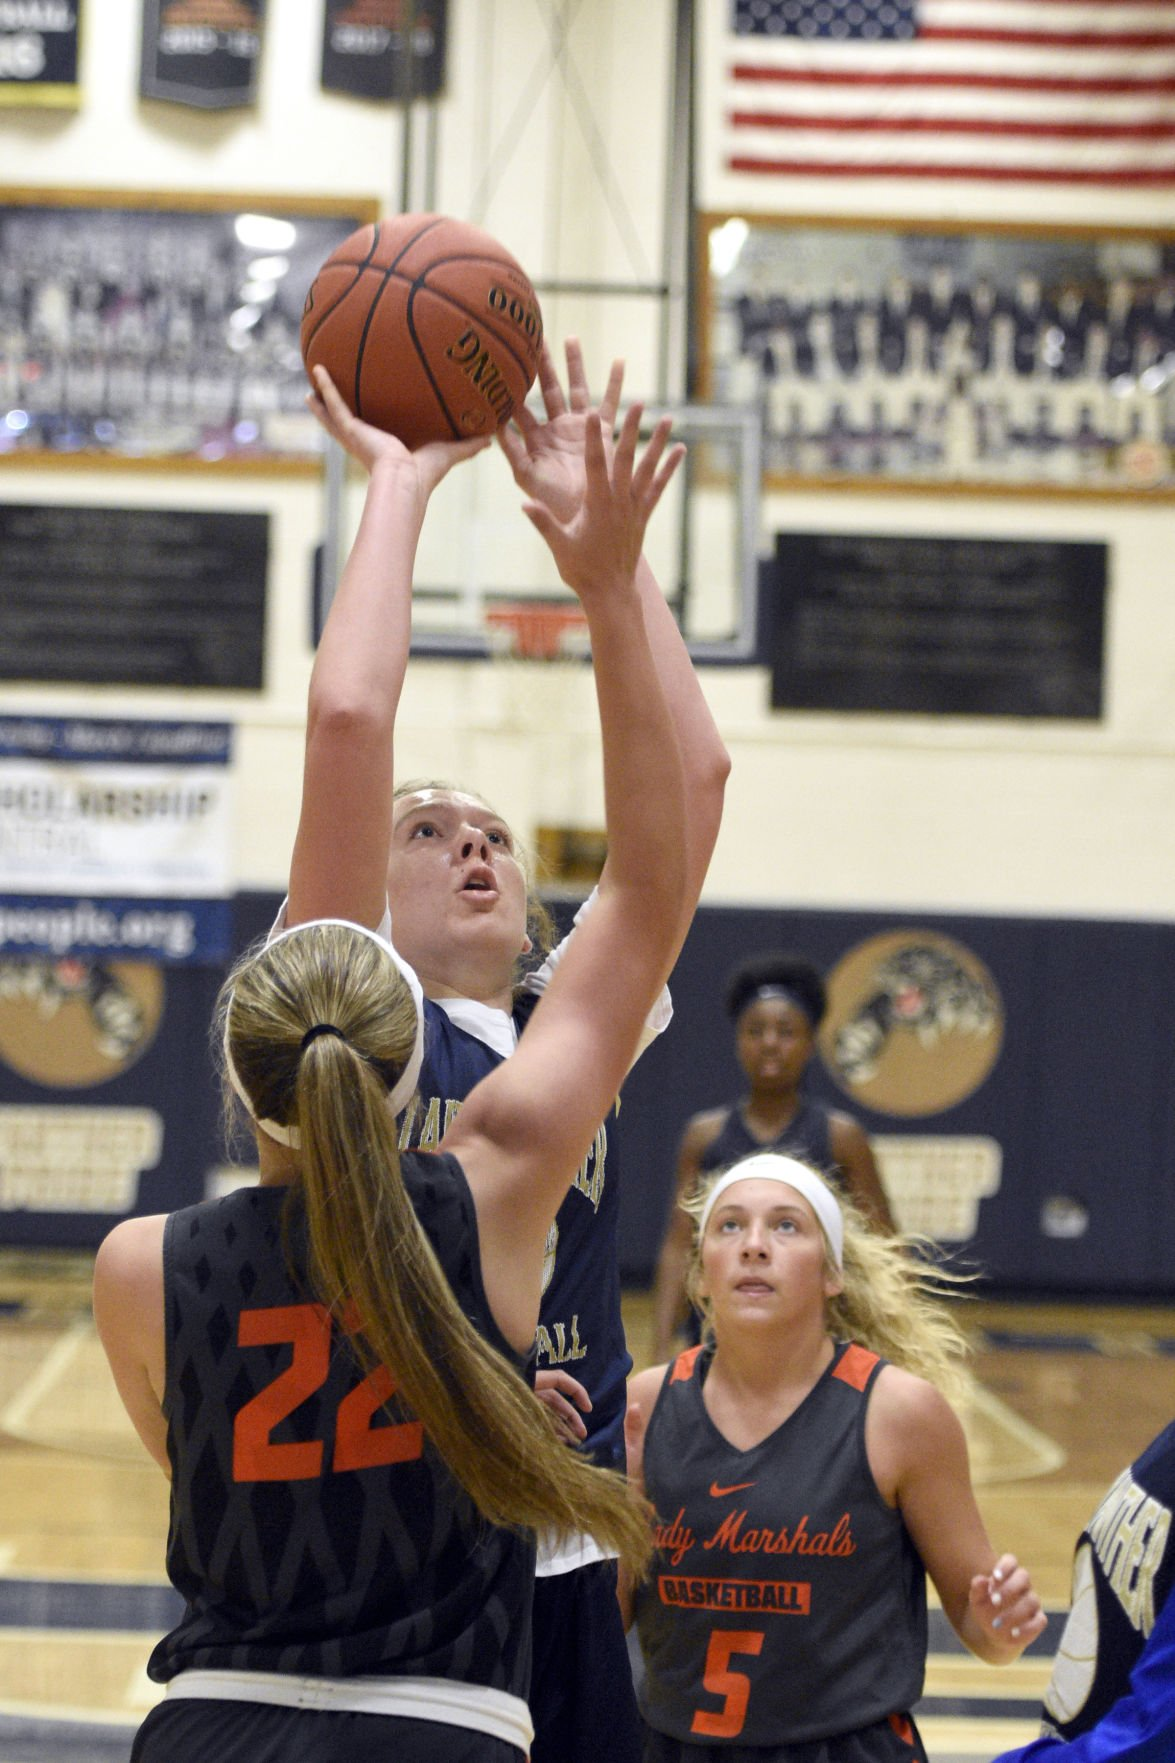 GIRLS' BASKETBALL: E'town has a new look